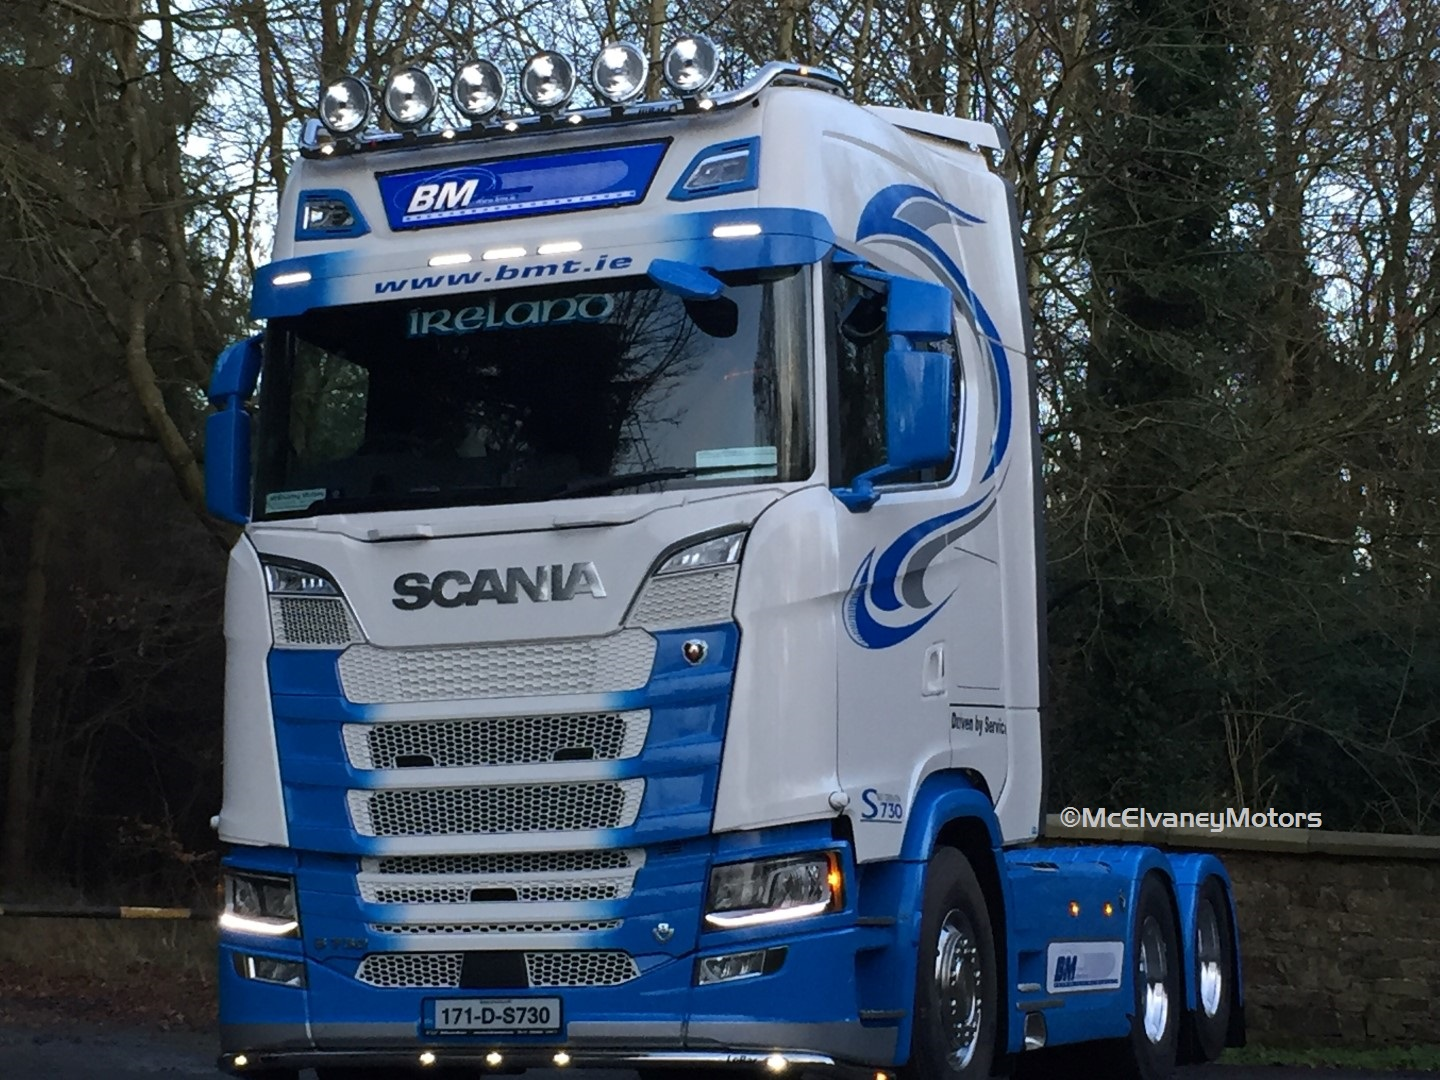 New Generation Scania S730 for BM Transport